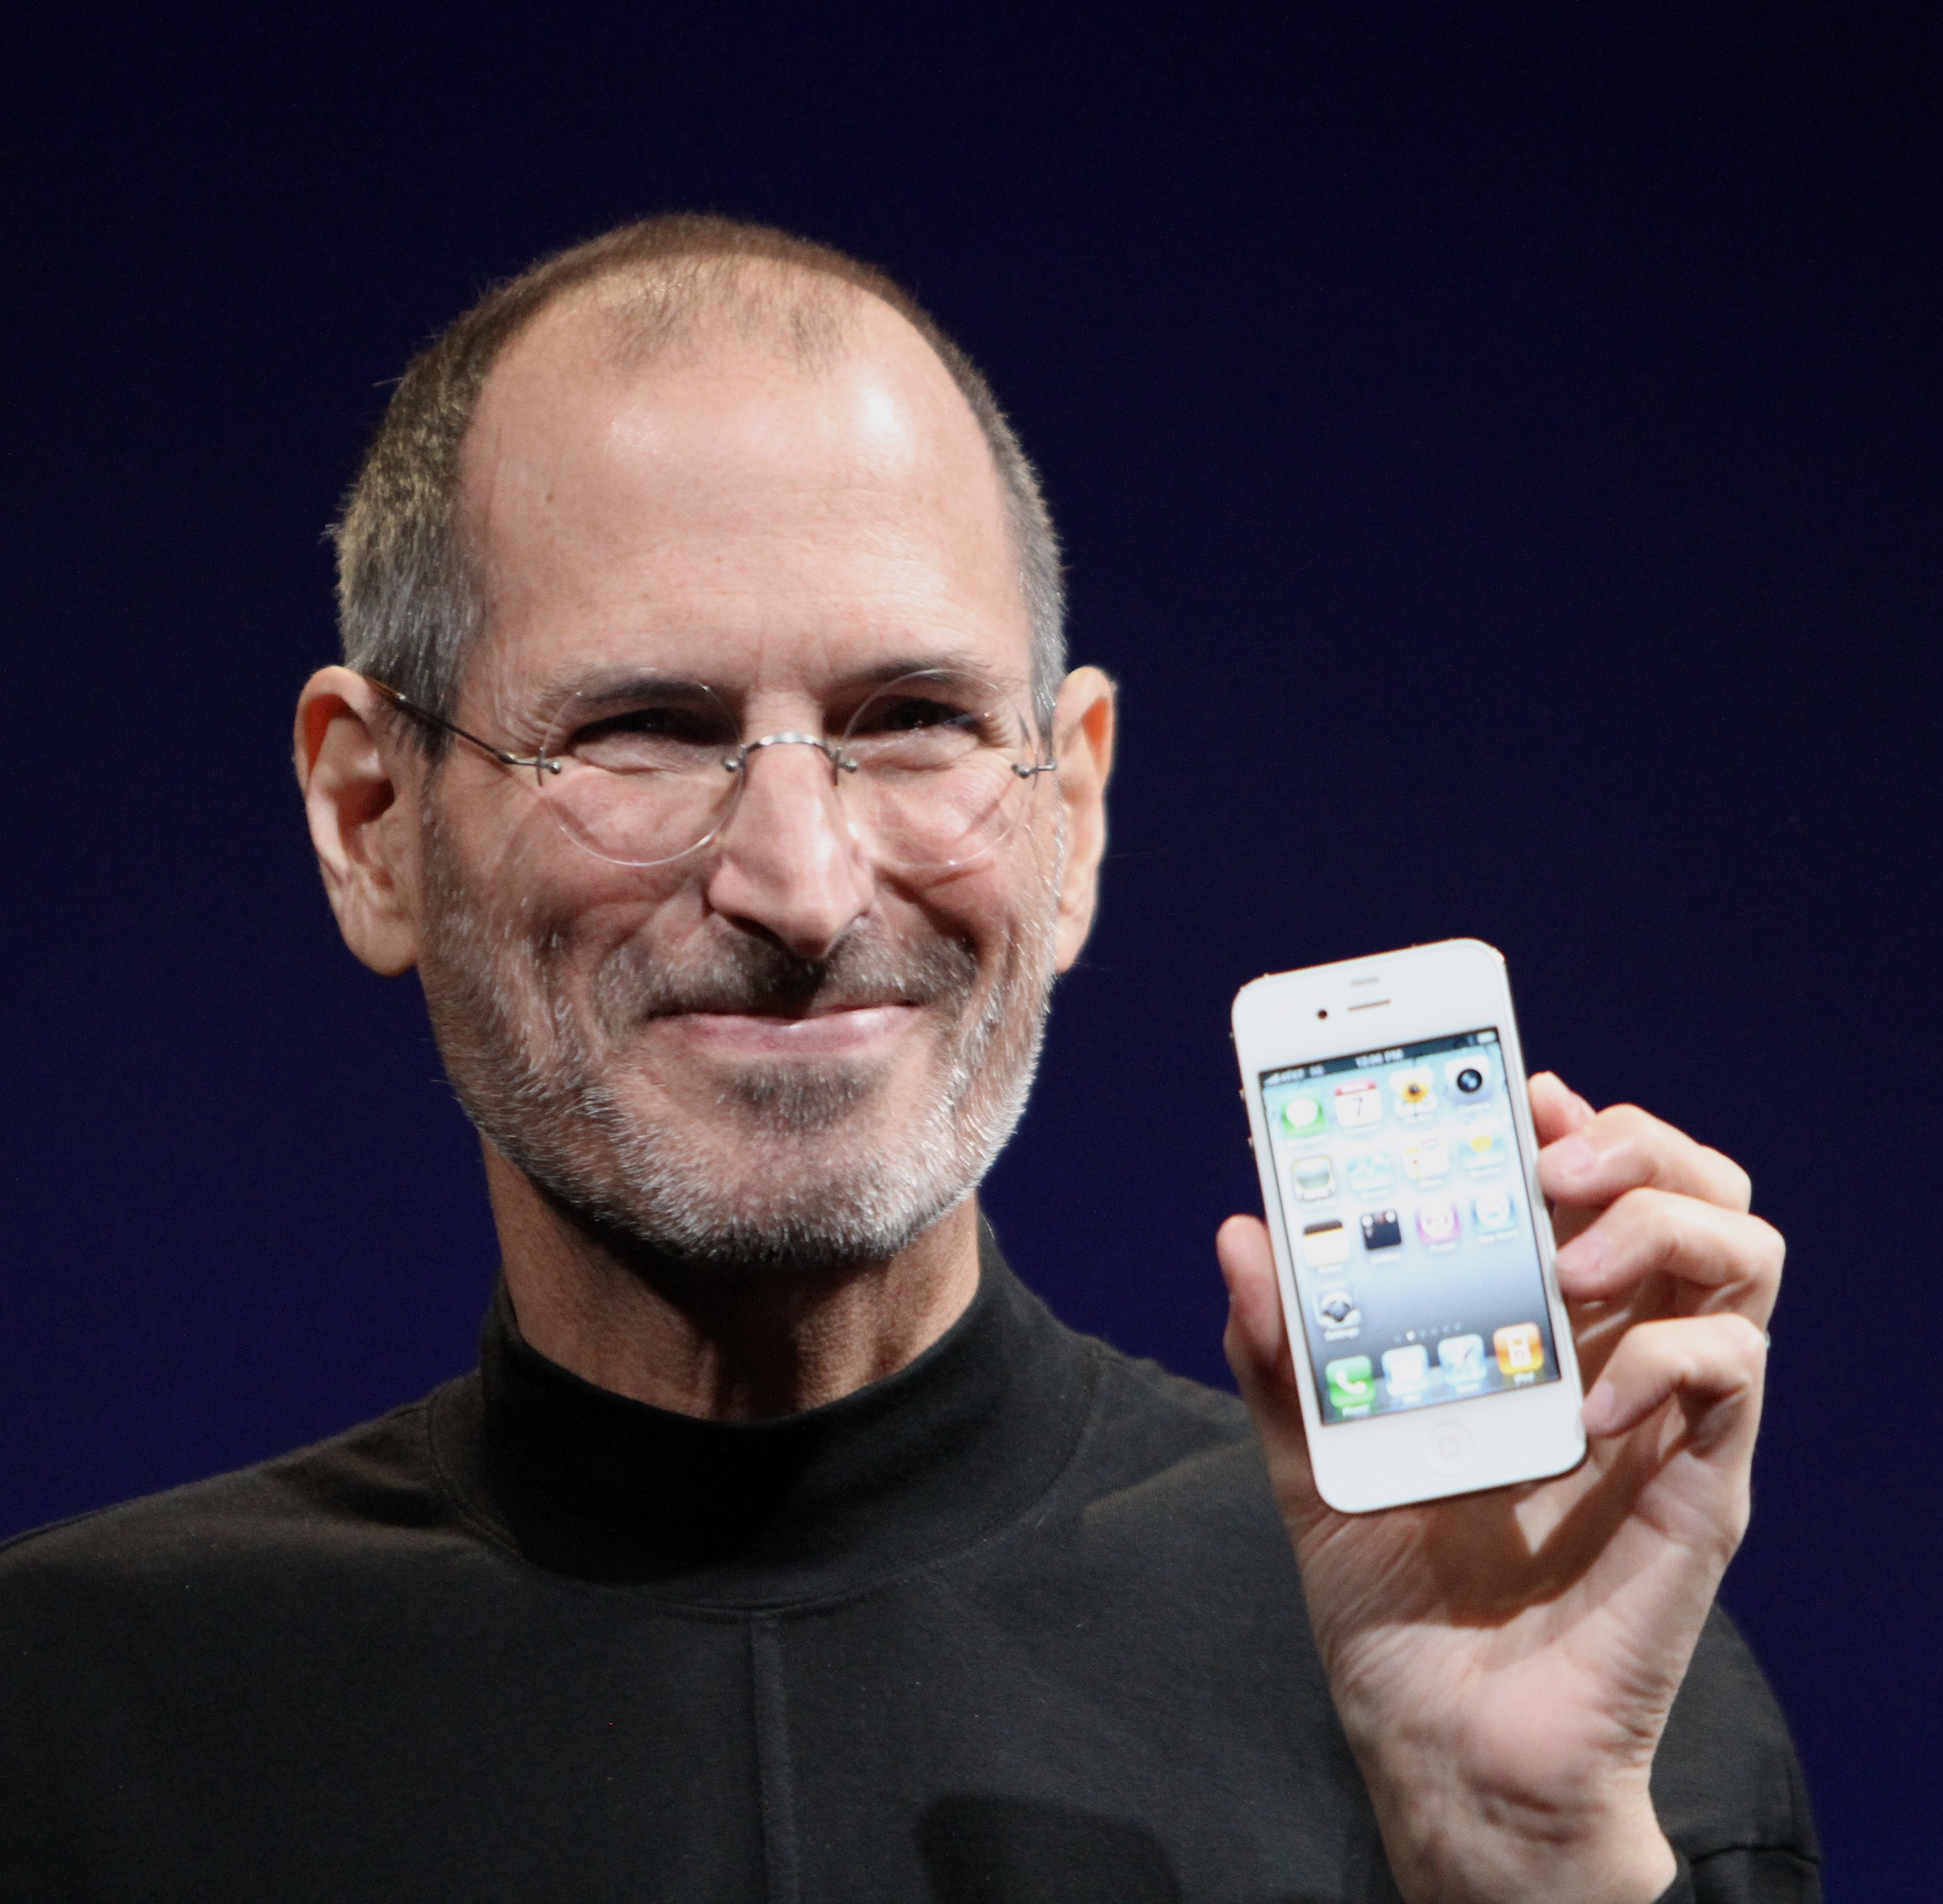 Steve Jobs holding an iphone.